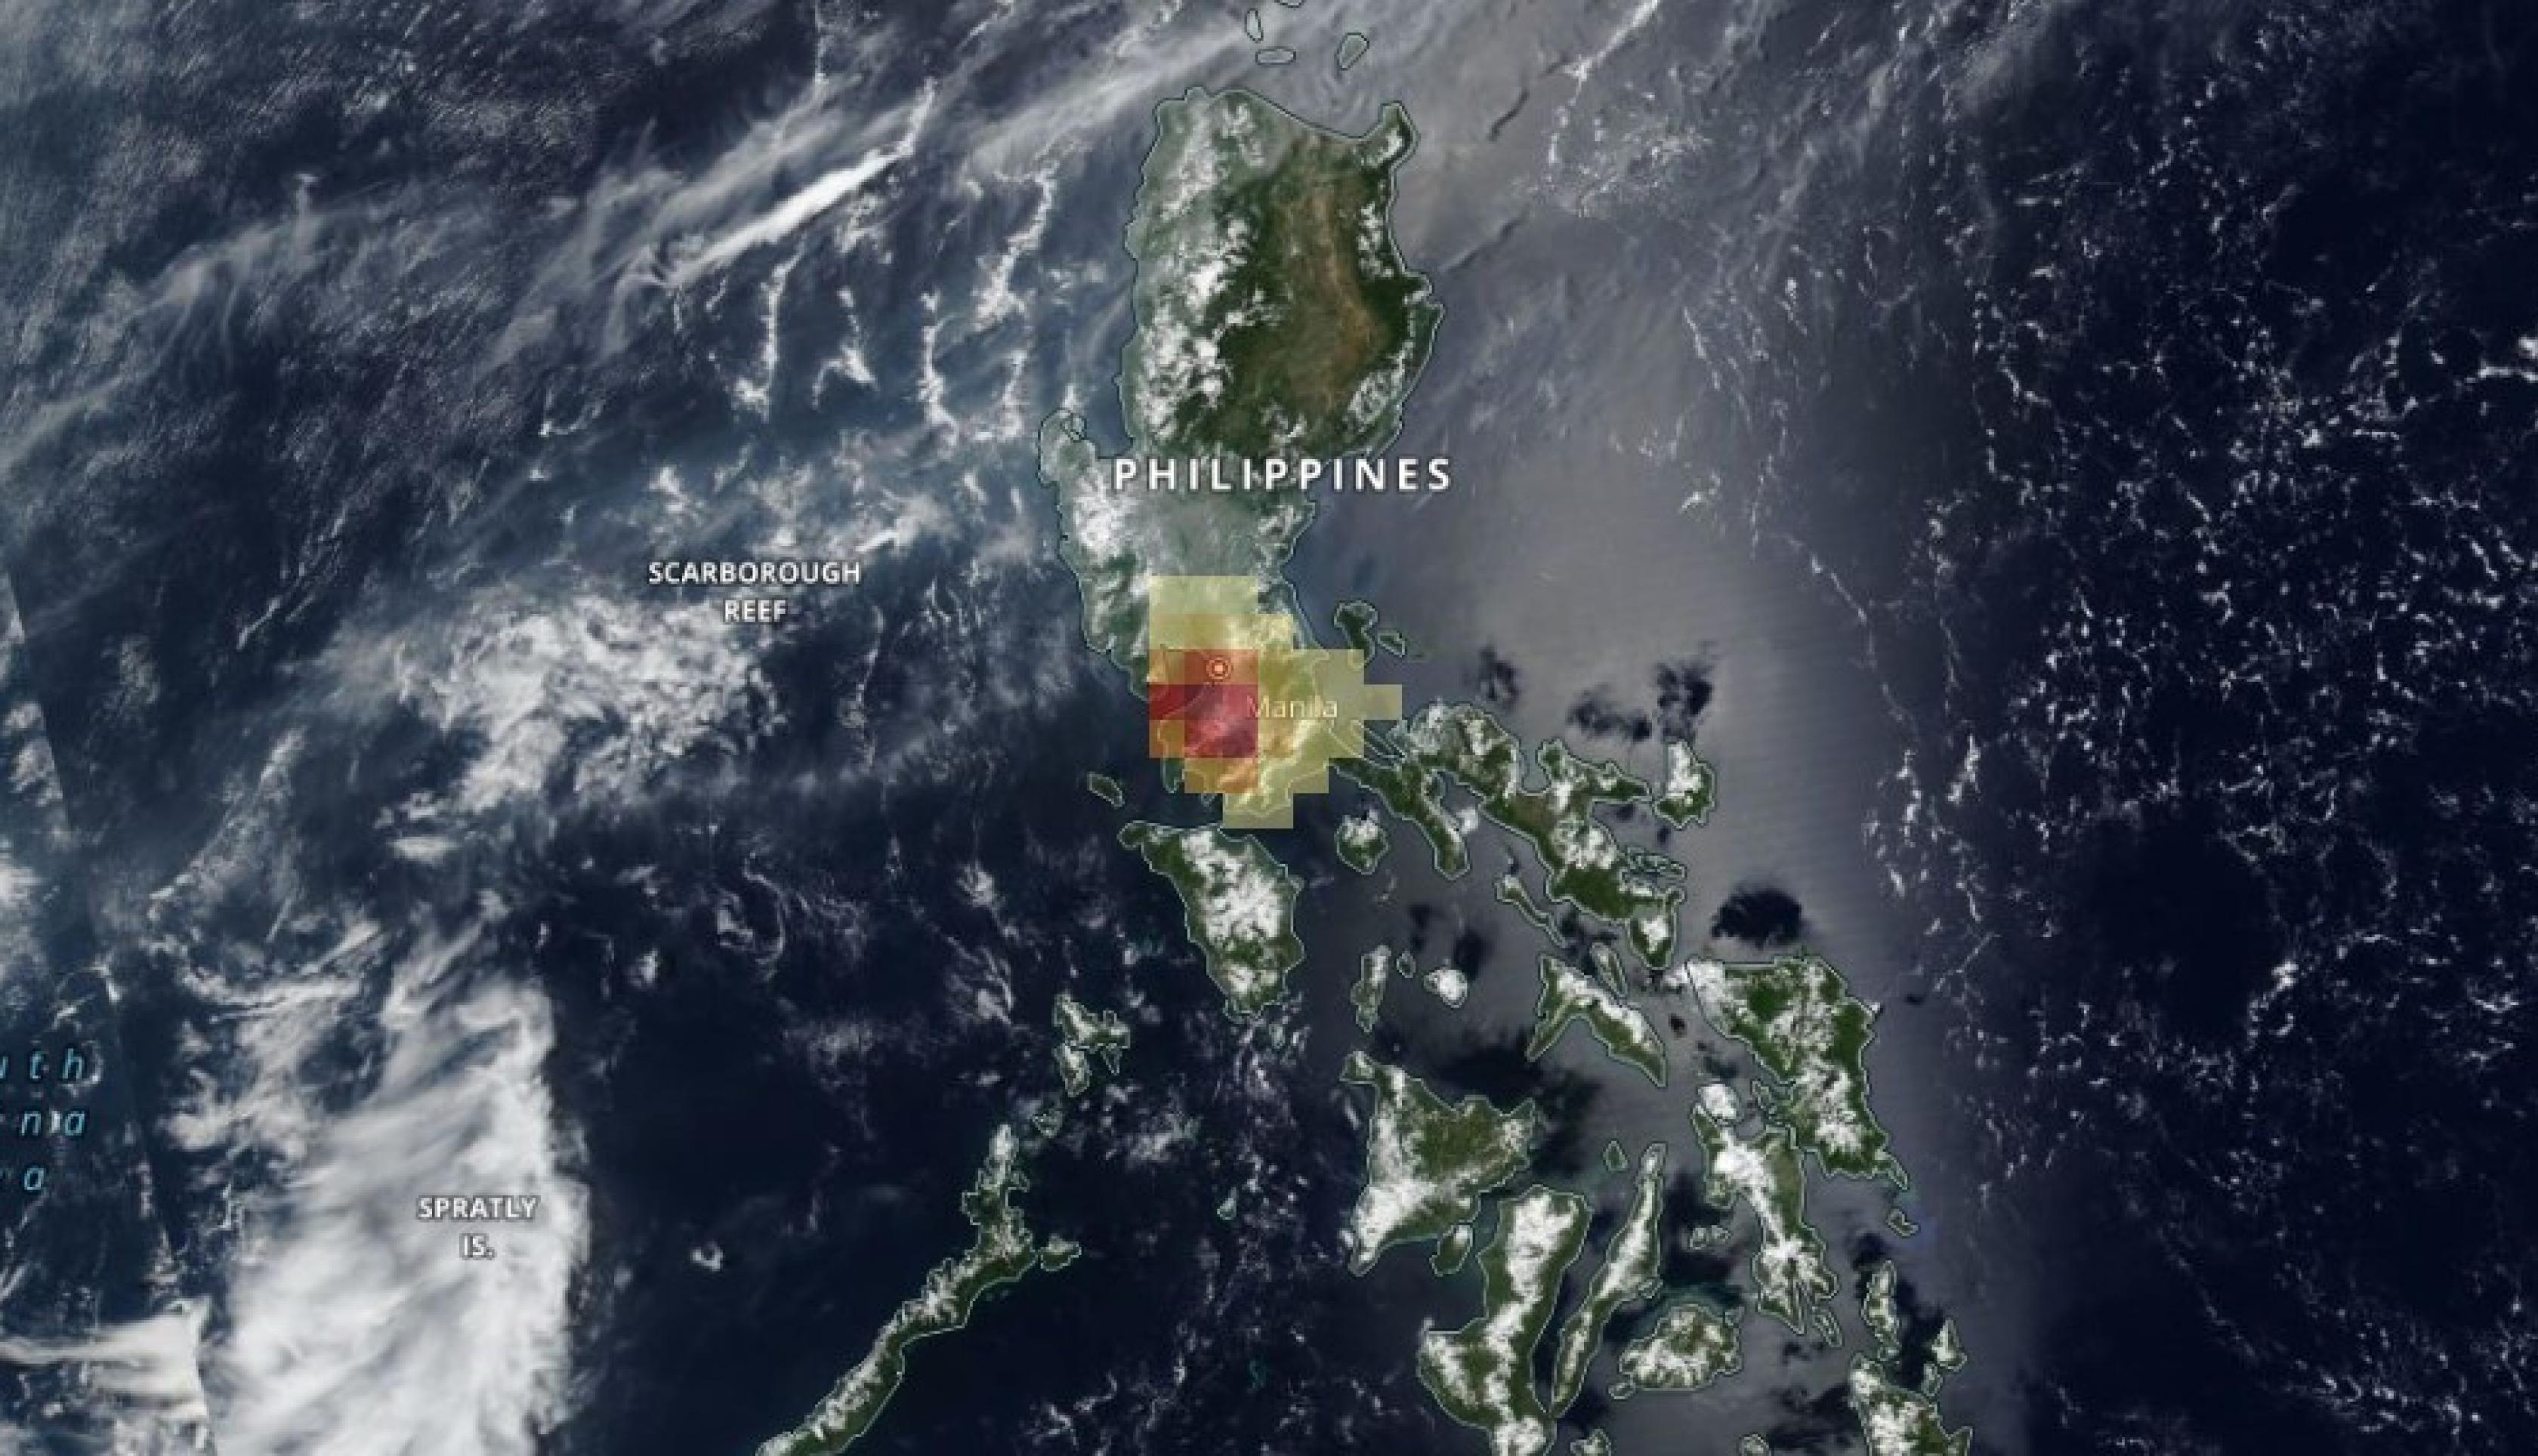 Map of sulfur dioxide (SO2) emitted by the Taal volcano on June 29, 2021, as observed by the NASA/NOAA Suomi NPP satellite. Credits: NASA